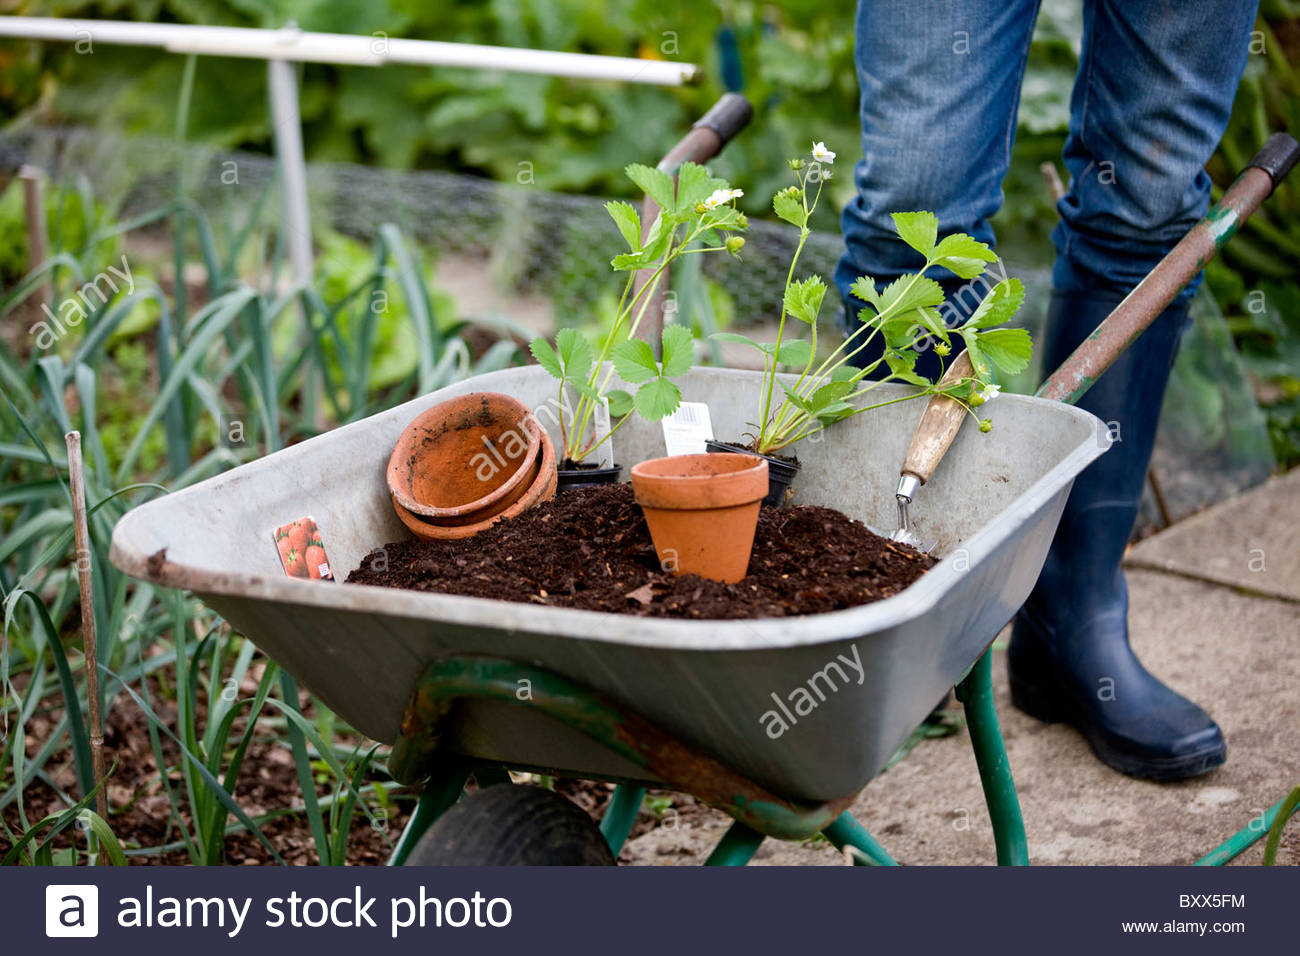 A gardener standing next to a wheelbarrow containing compost and strawberry plants - Stock Image